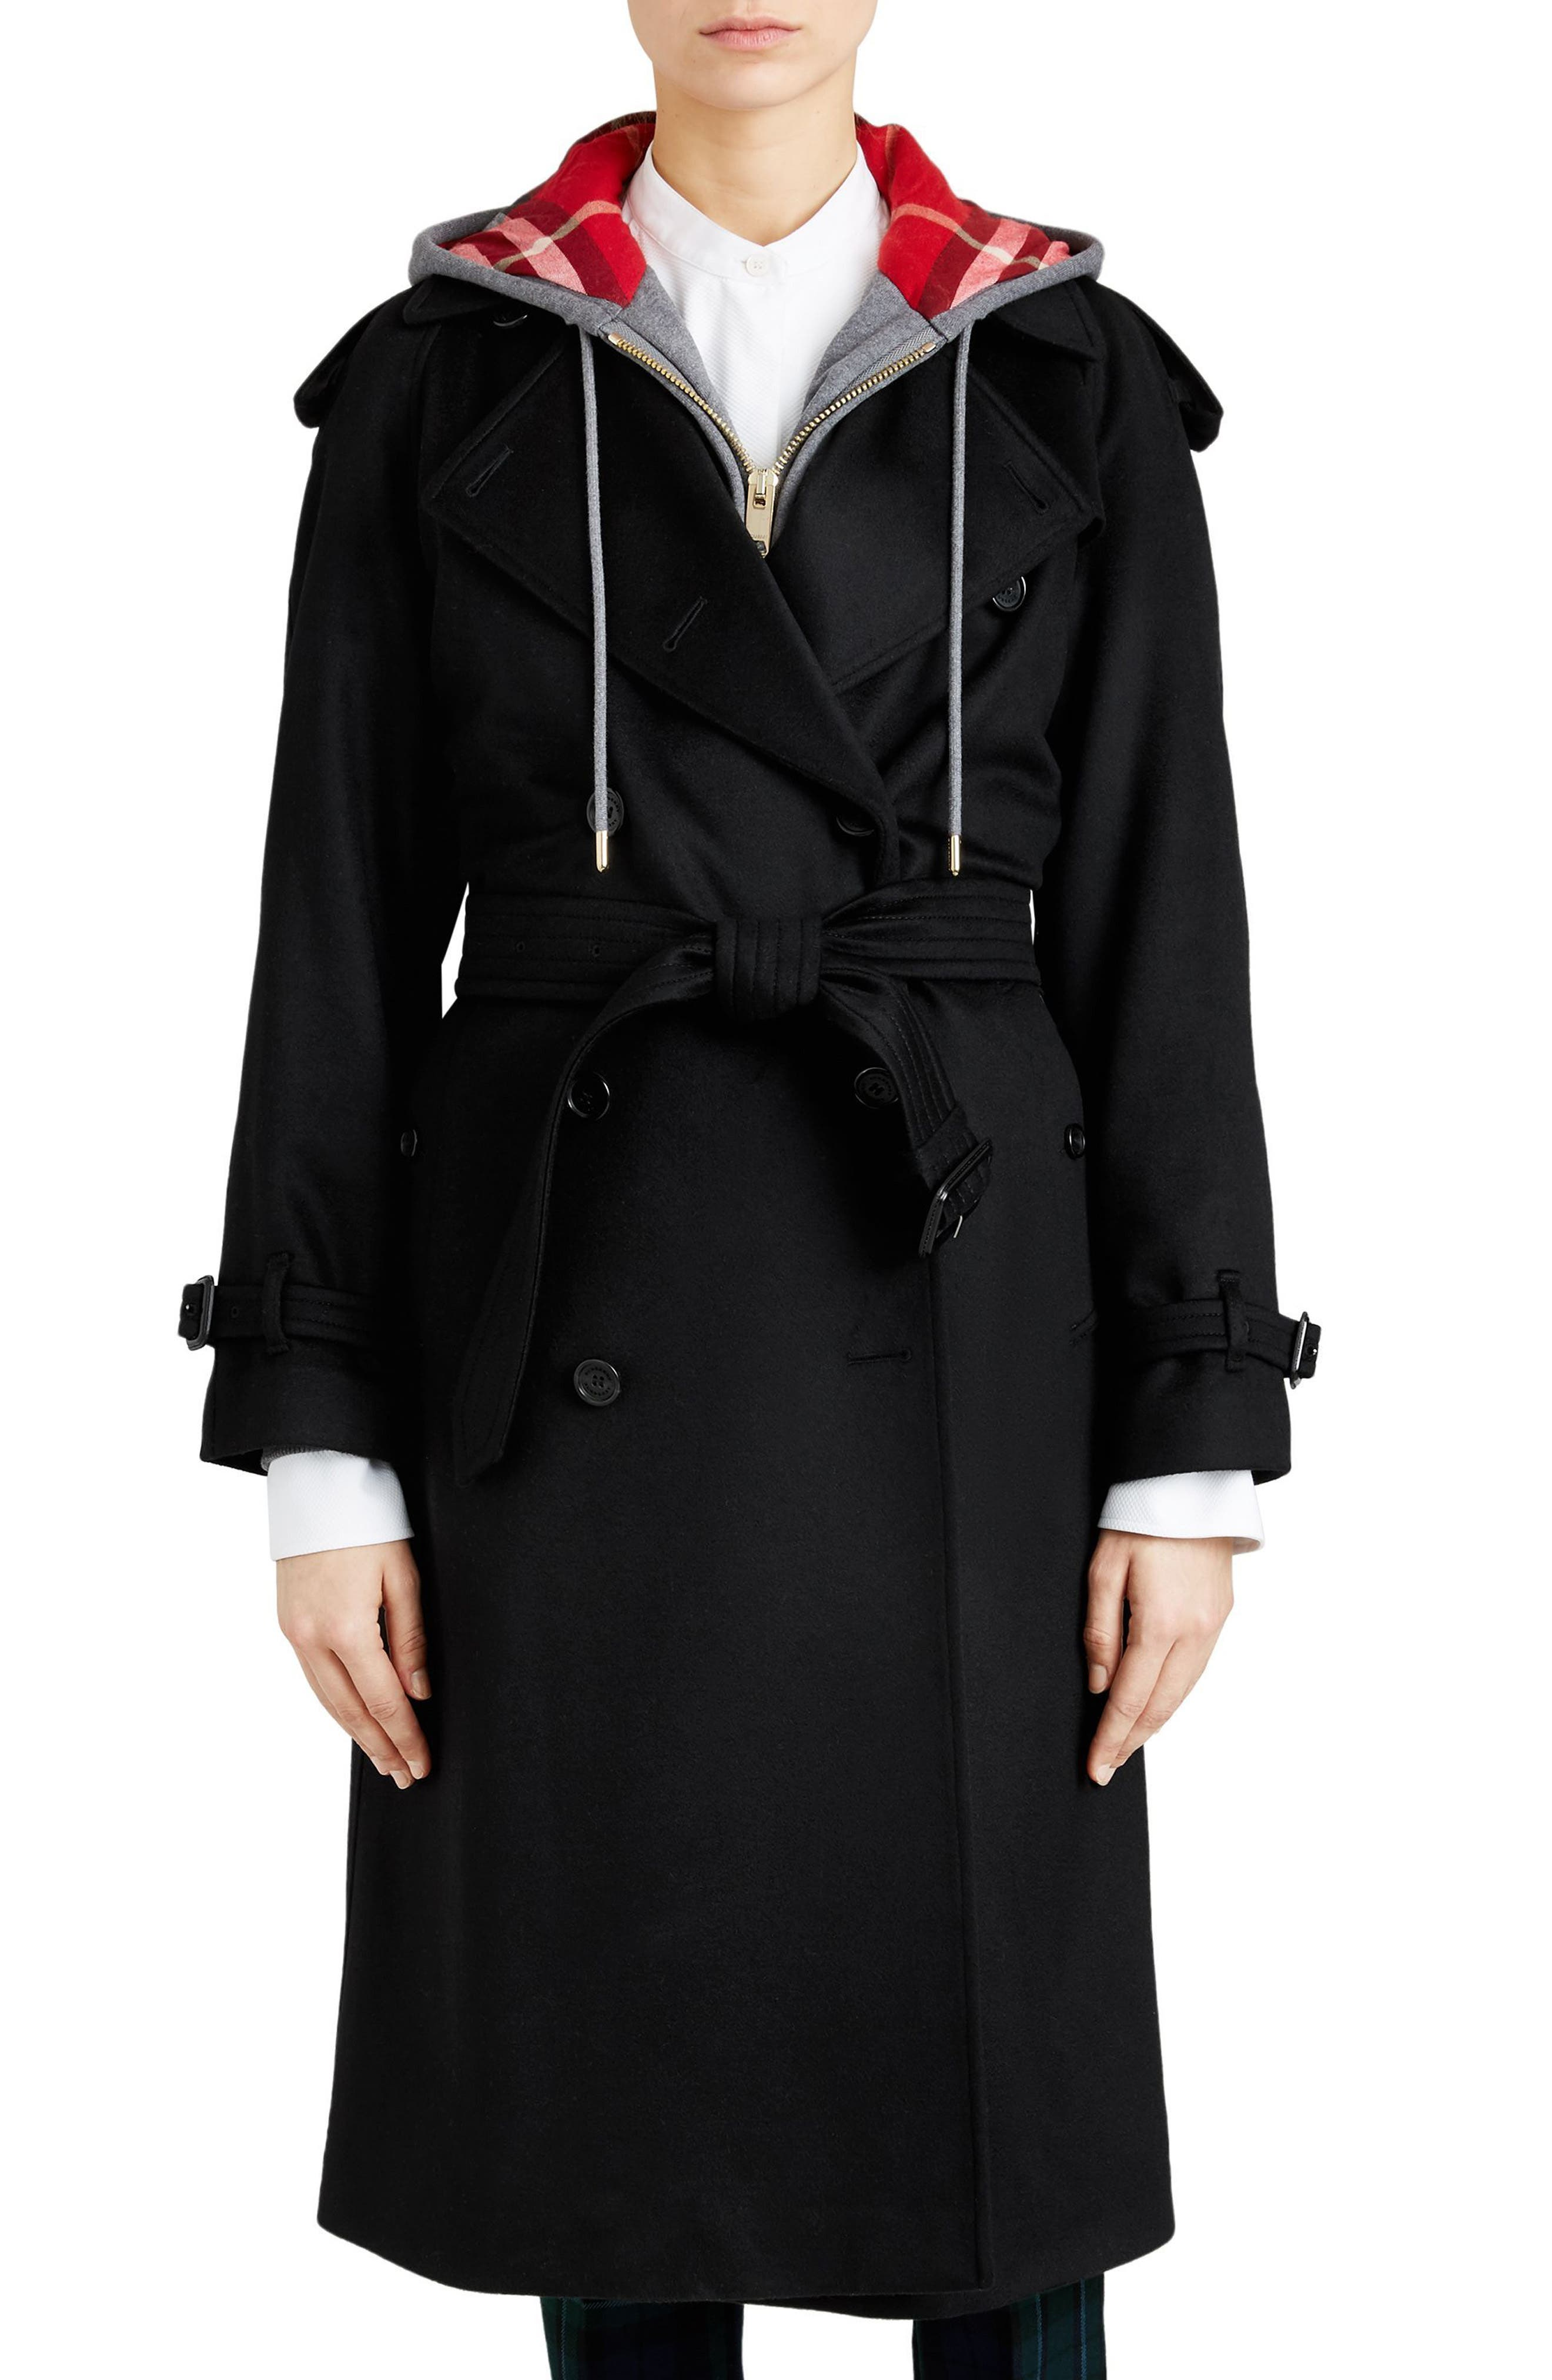 Eastheath Cashmere Trench Coat,                             Main thumbnail 1, color,                             BLACK